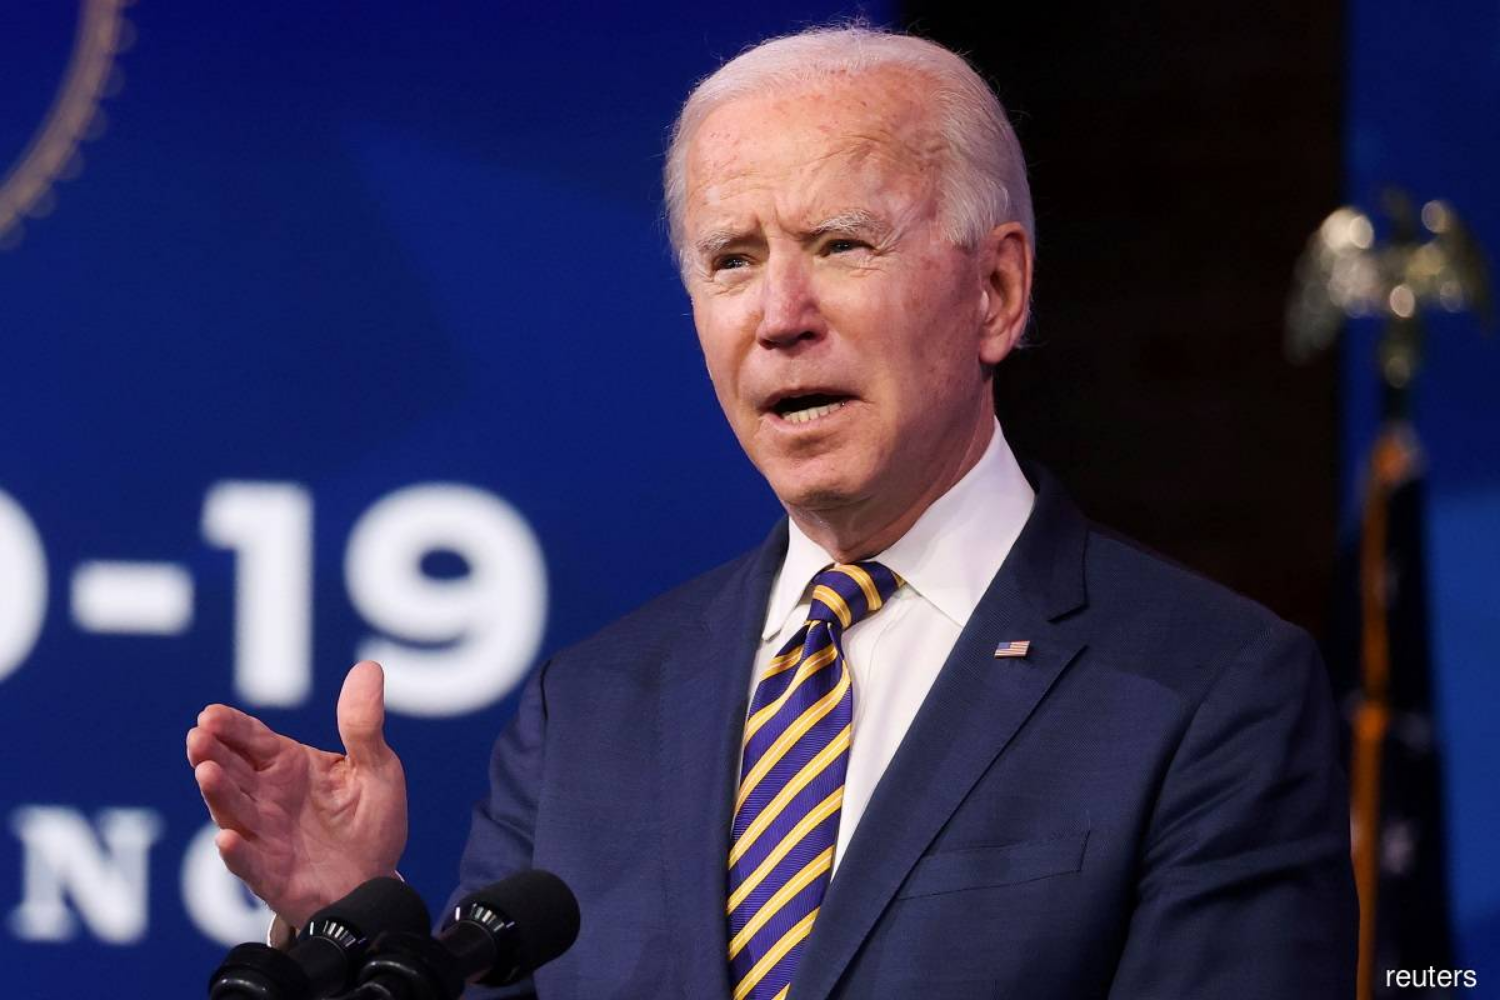 Biden willing to accept 25% corporate tax rate to fund spending programmes